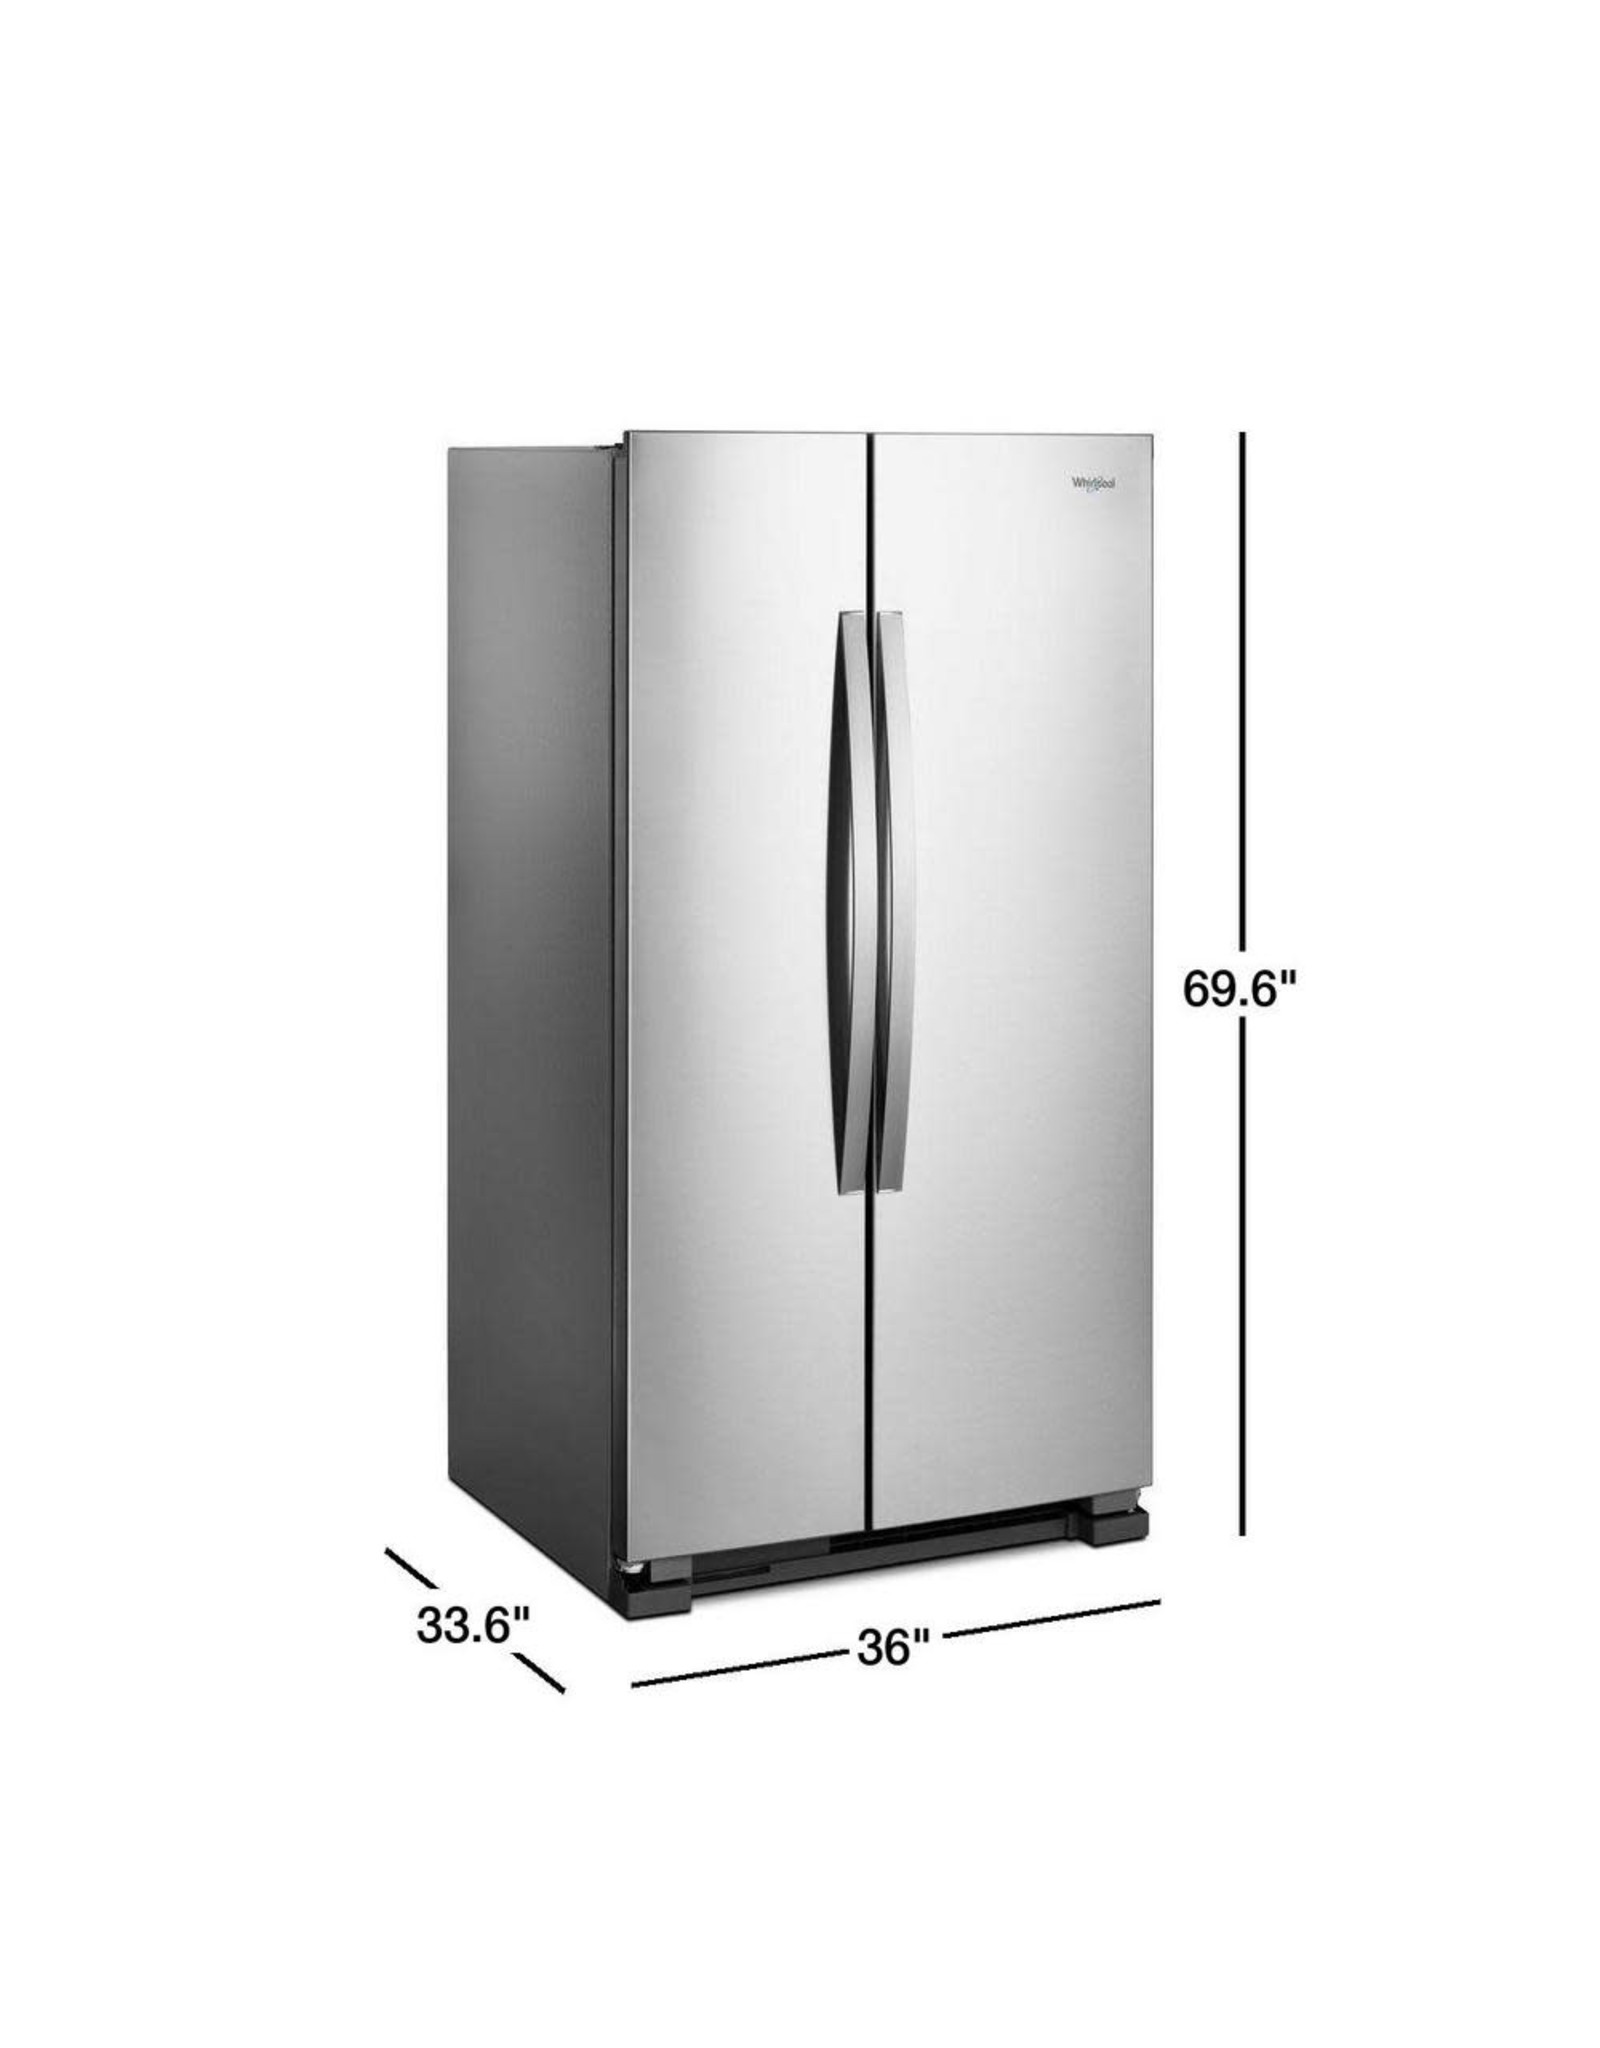 WRS315SNHM WHR No Frost Side - Free Standing Refr Frez - 25 CU FT, 36 INCH WIDTH, LED, NON DISPEN